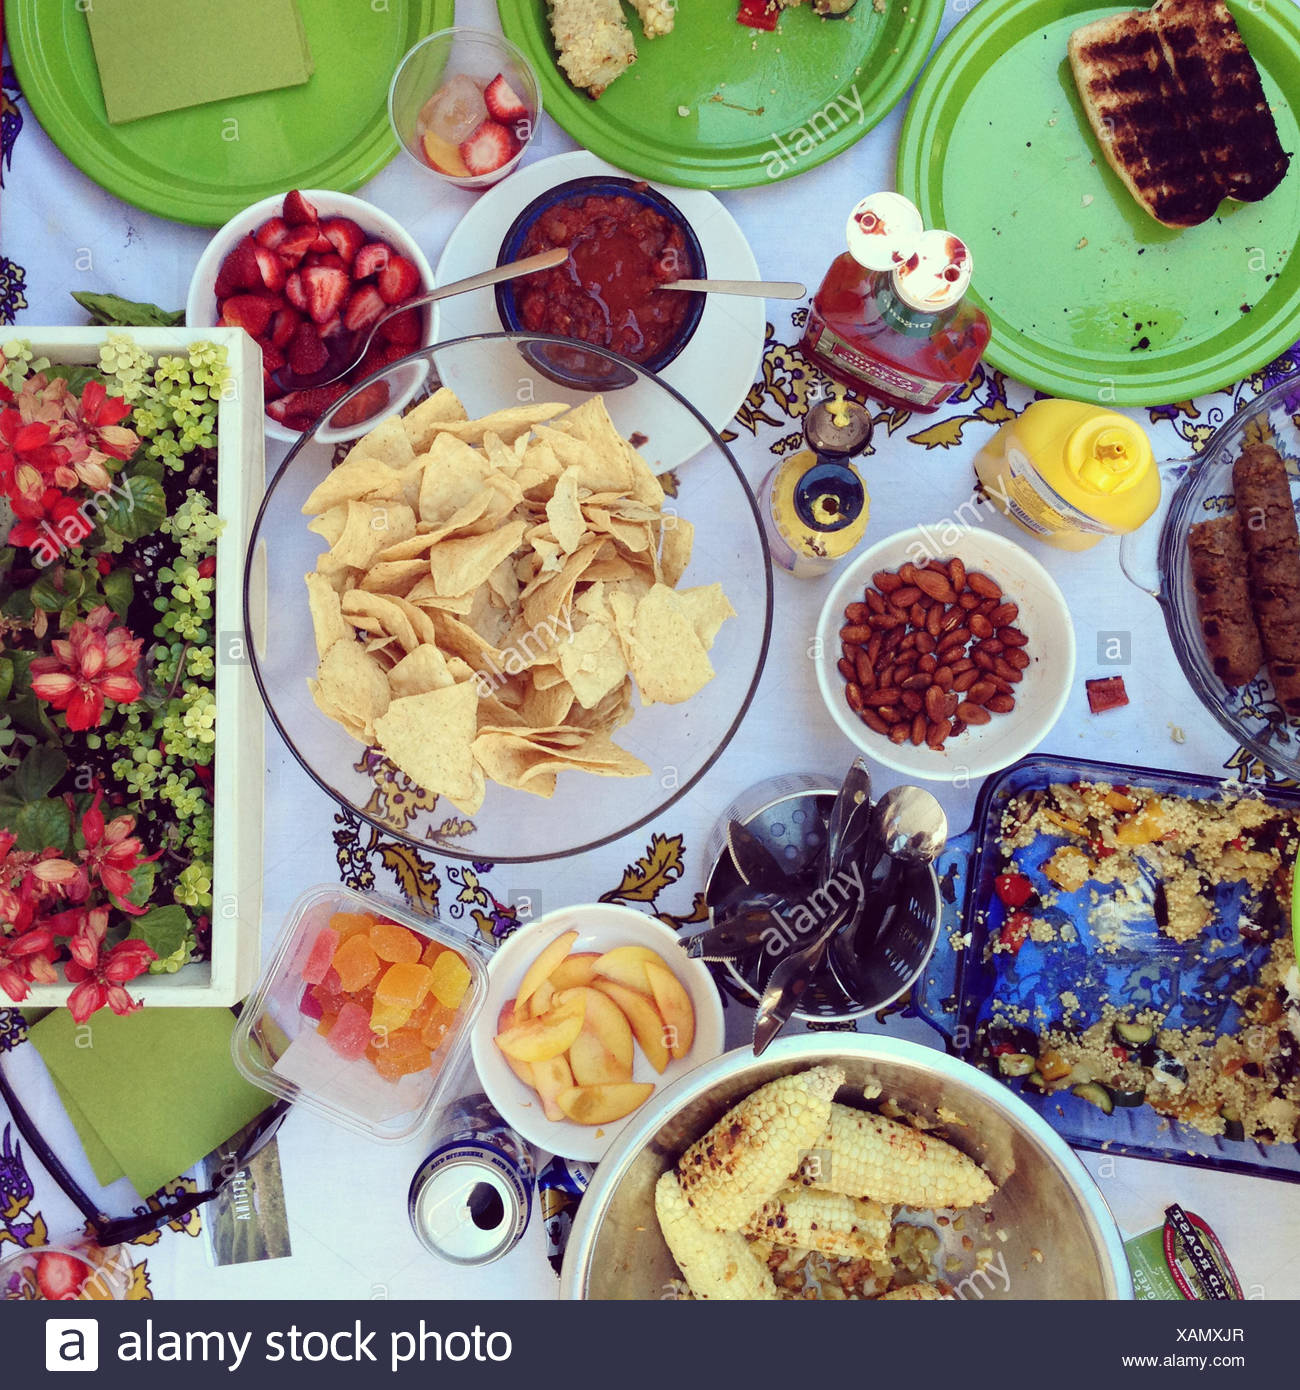 Table with barbecue food - Stock Image